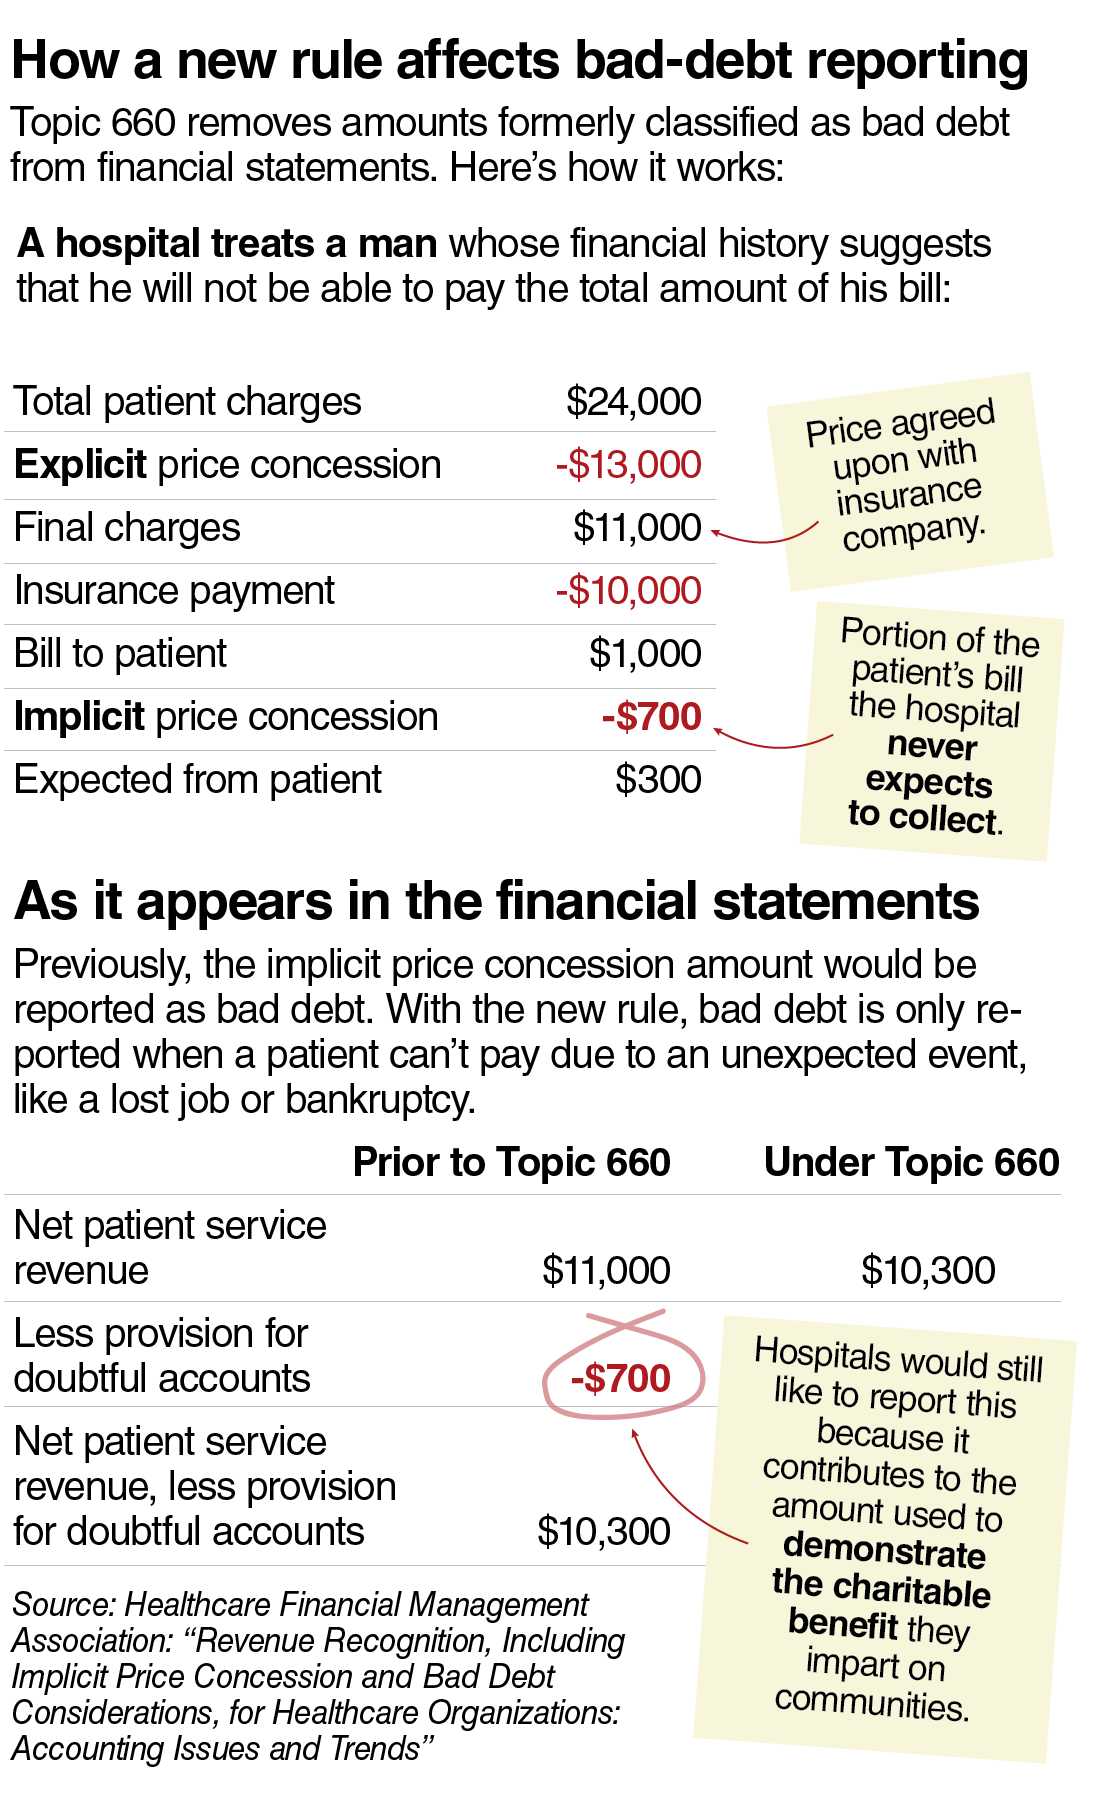 How a new rule affects bad-debt reporting